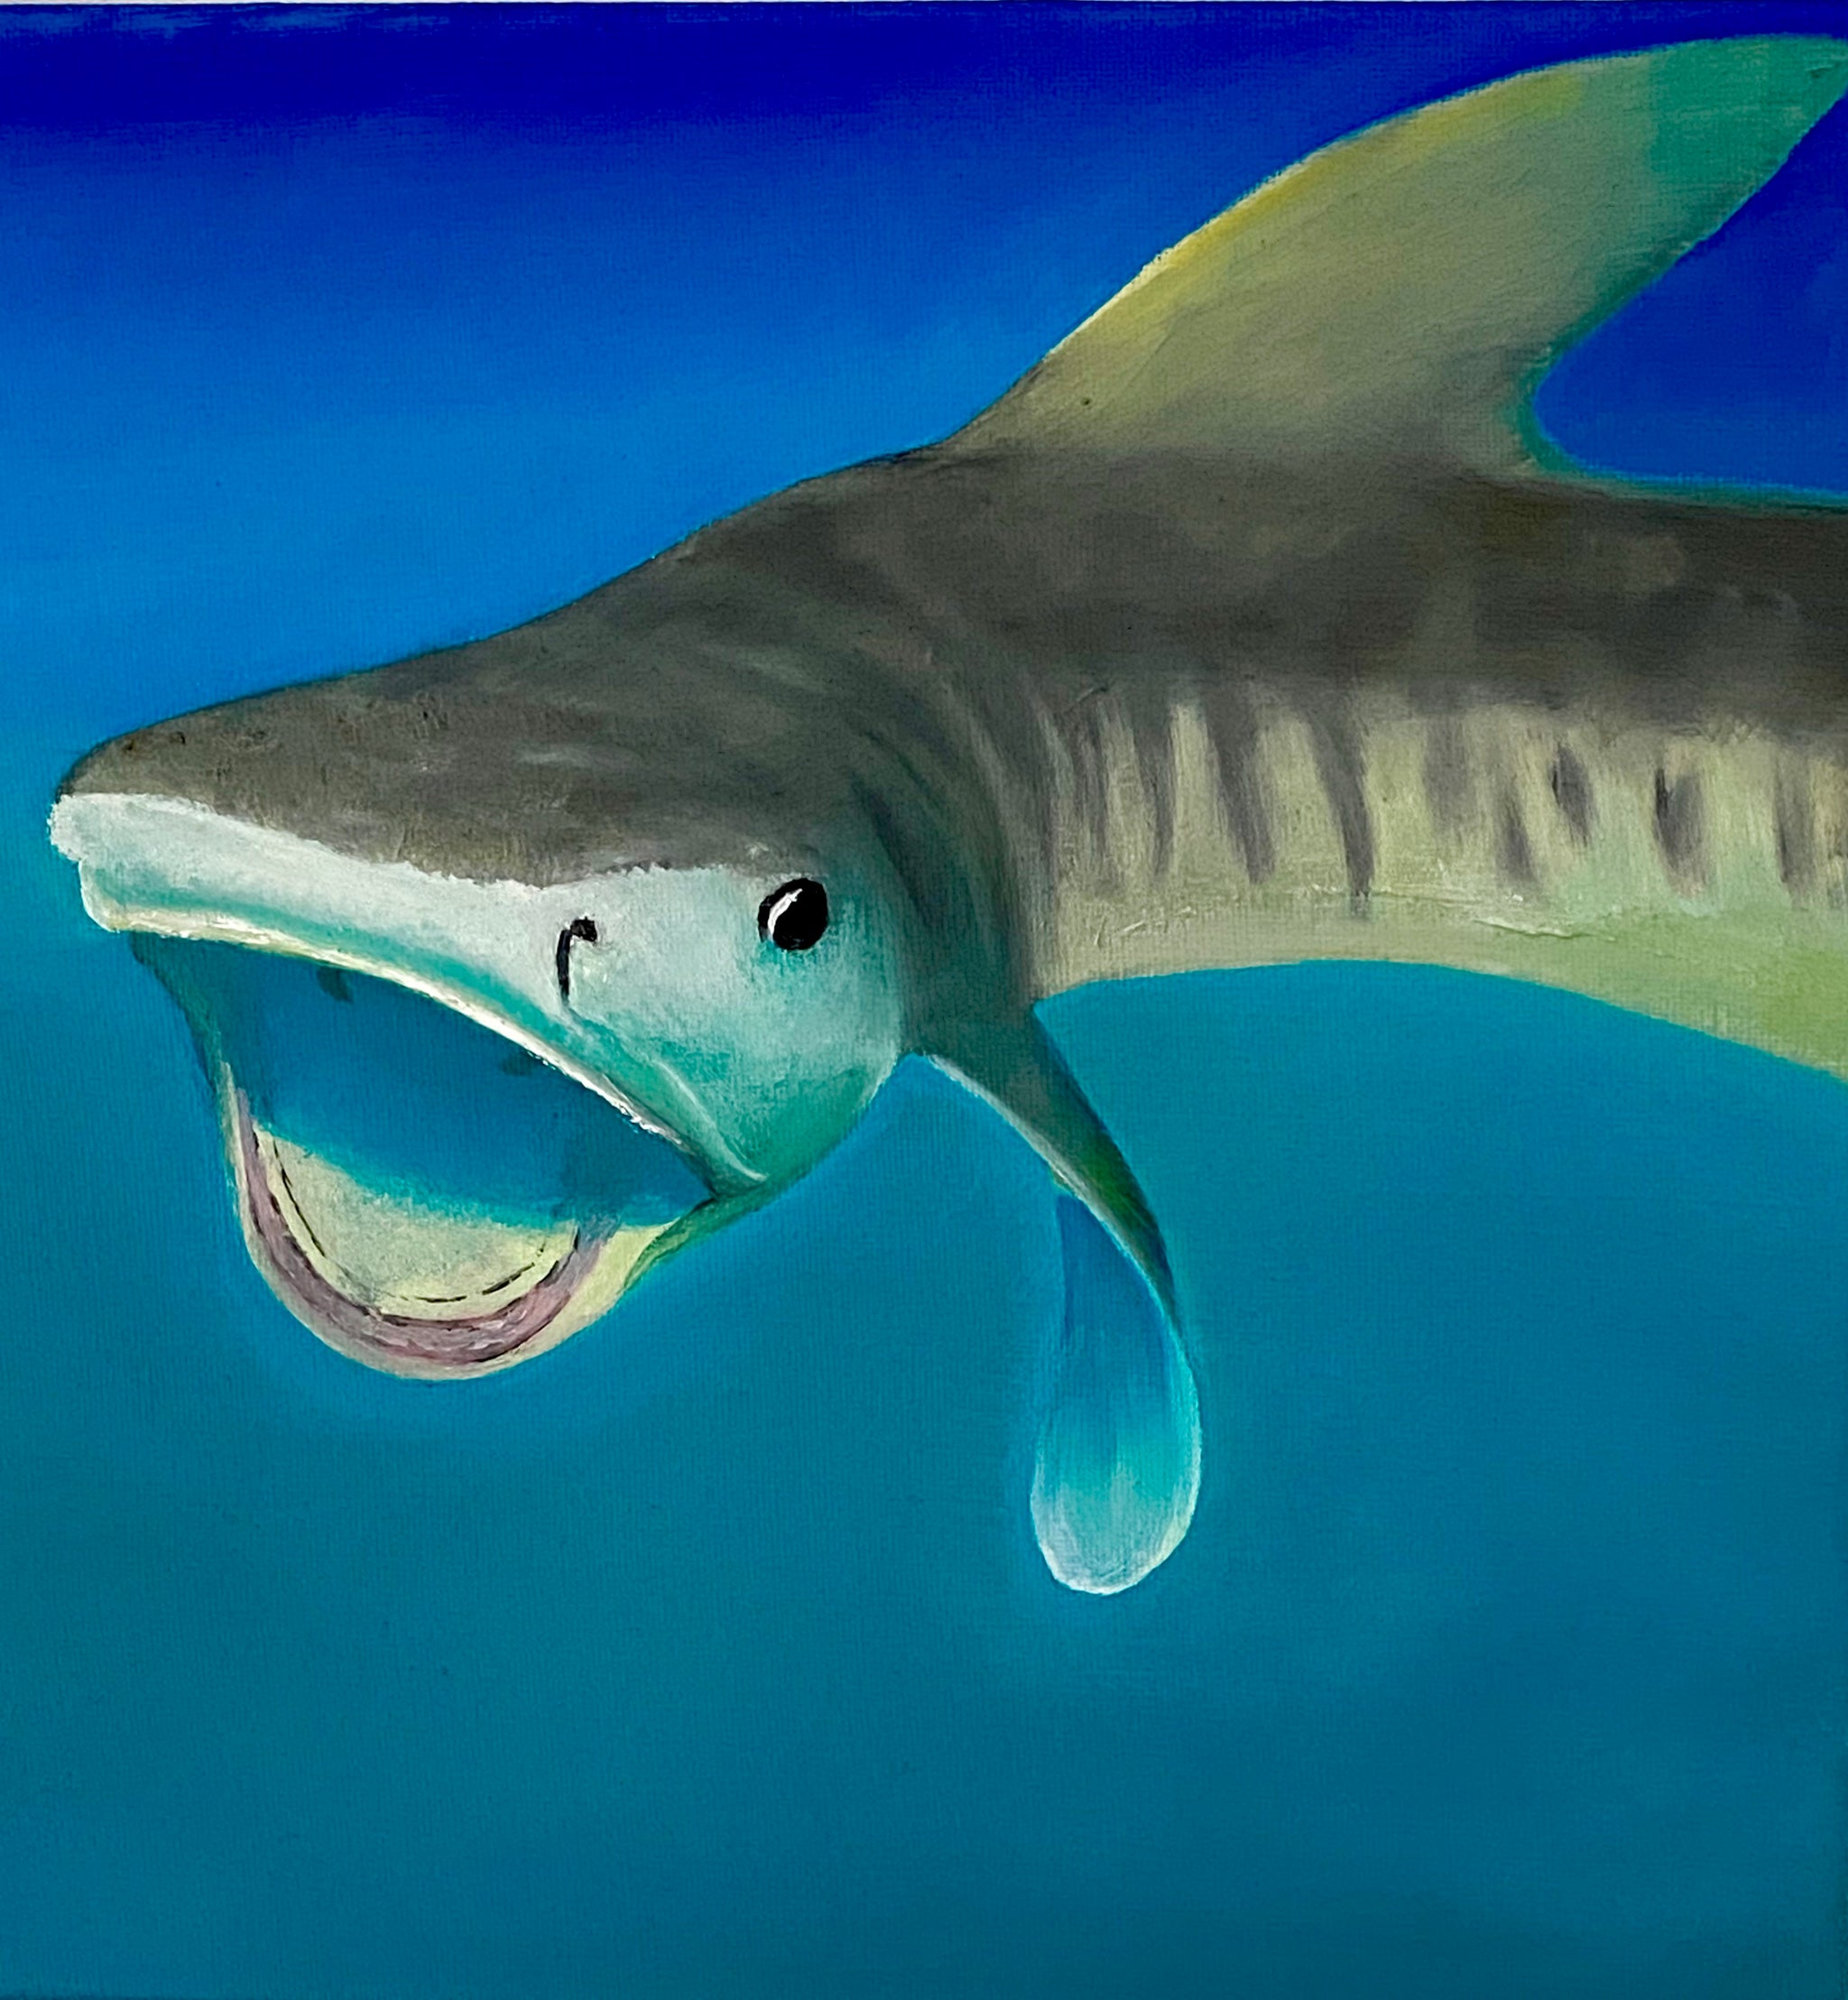 juvenile tiger shark oil painting by Delphine Pontvieux